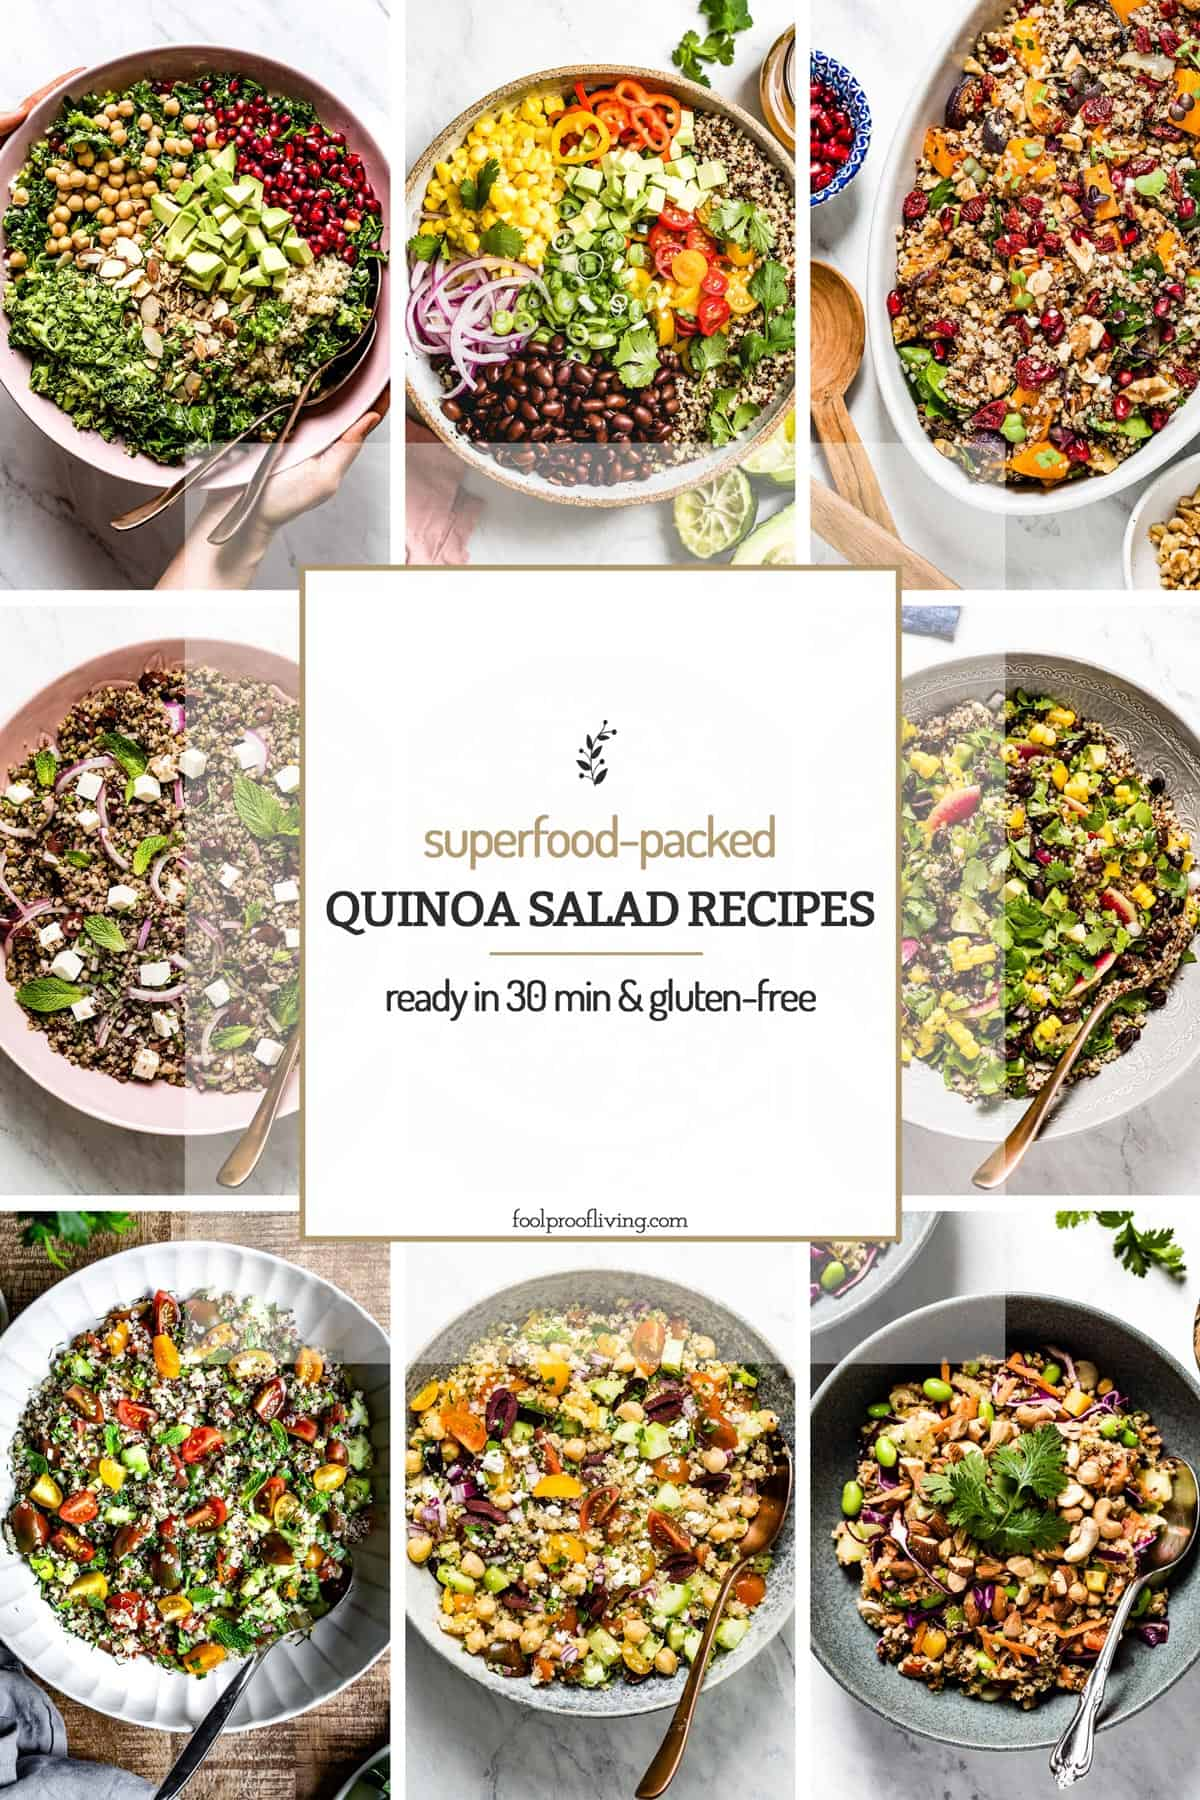 Quinoa Salad recipes placed in a collage with text on the image